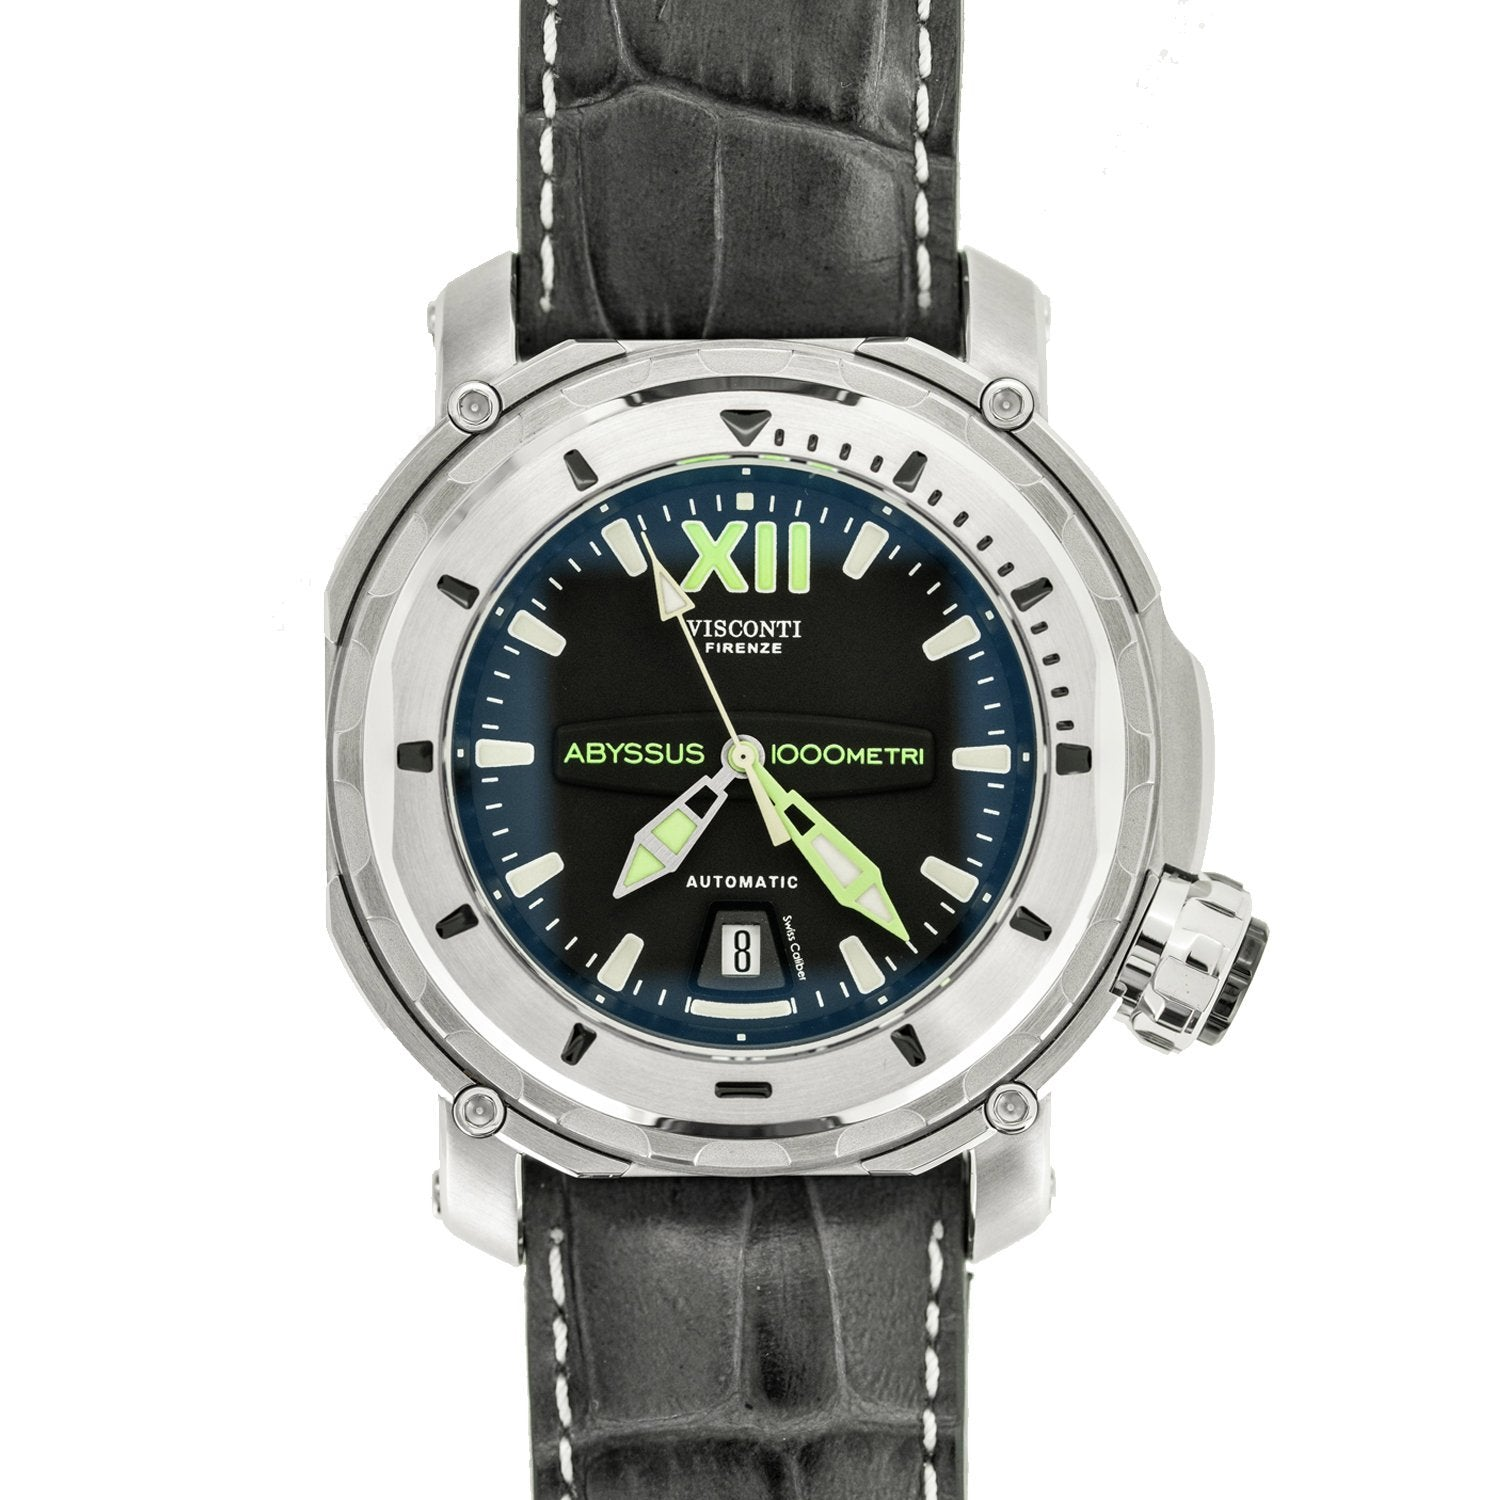 Visconti Full Dive Abyssus 1000M Diver Steel - Watches & Crystals